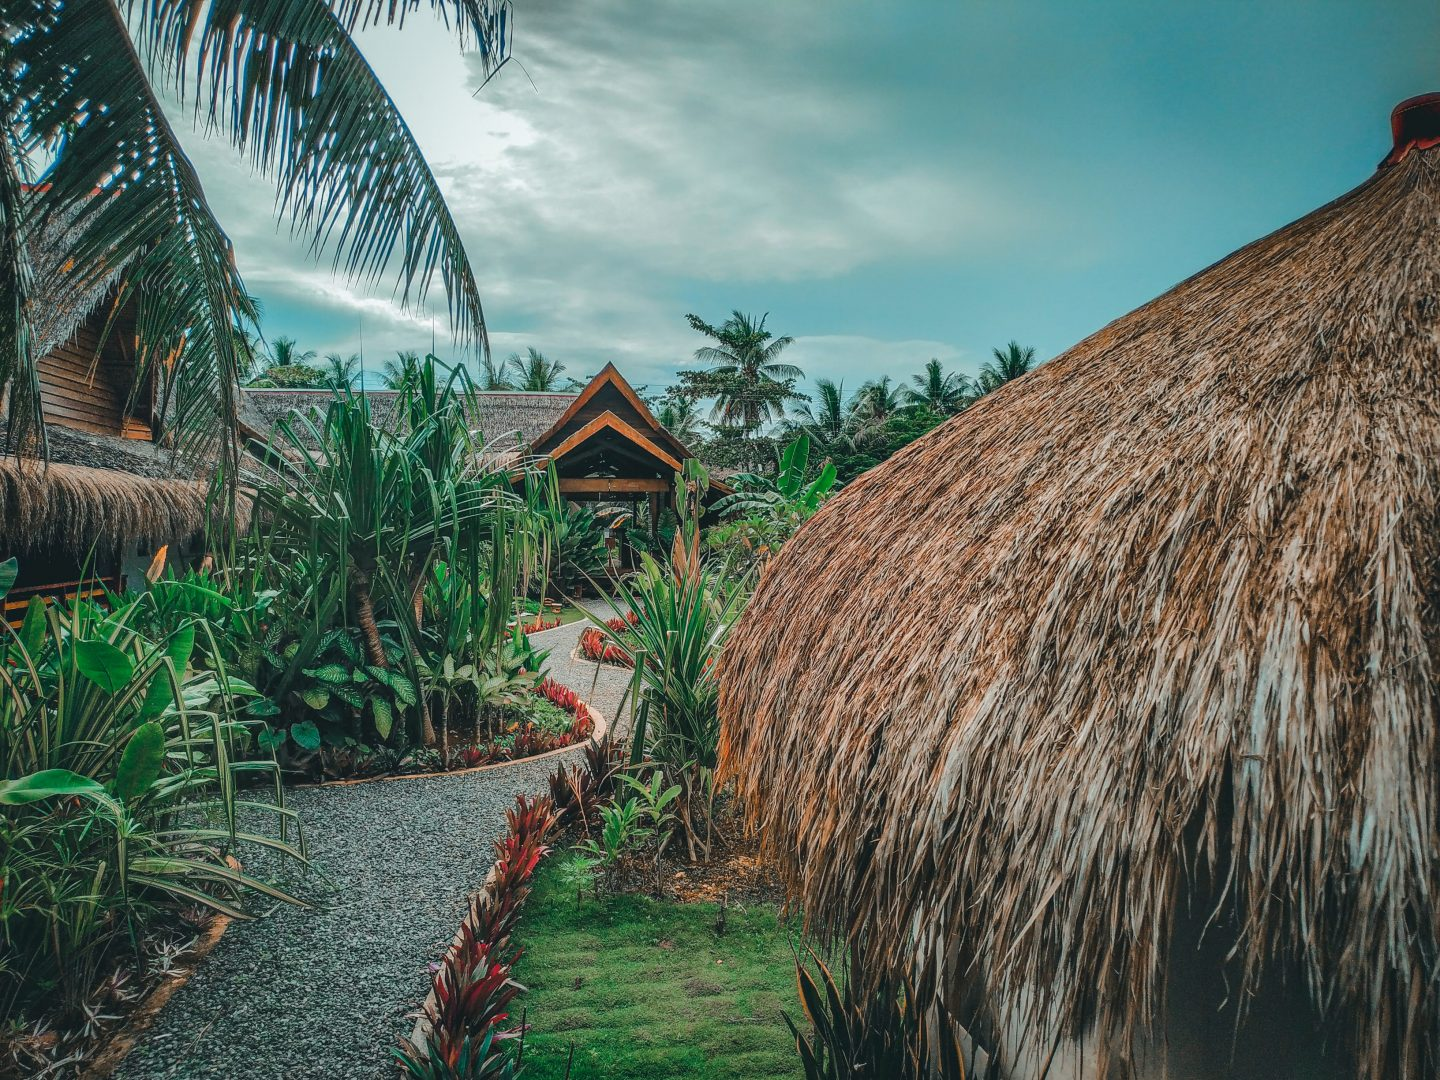 Bulan Villas Siargao: A Picturesque Accommodation in Siargao